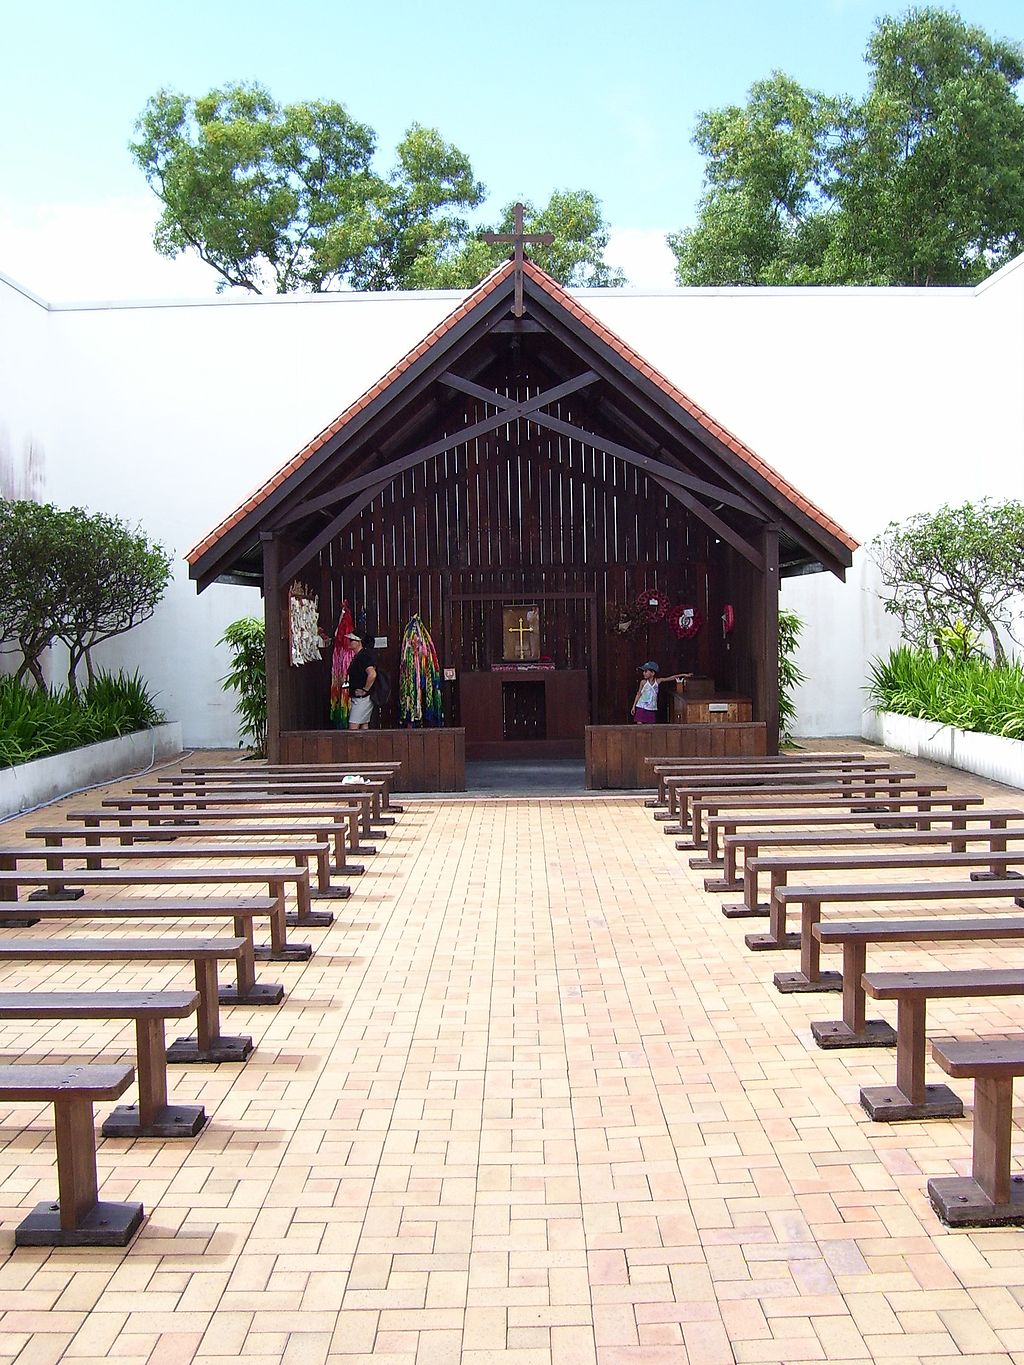 POW chapel at Changi Prison